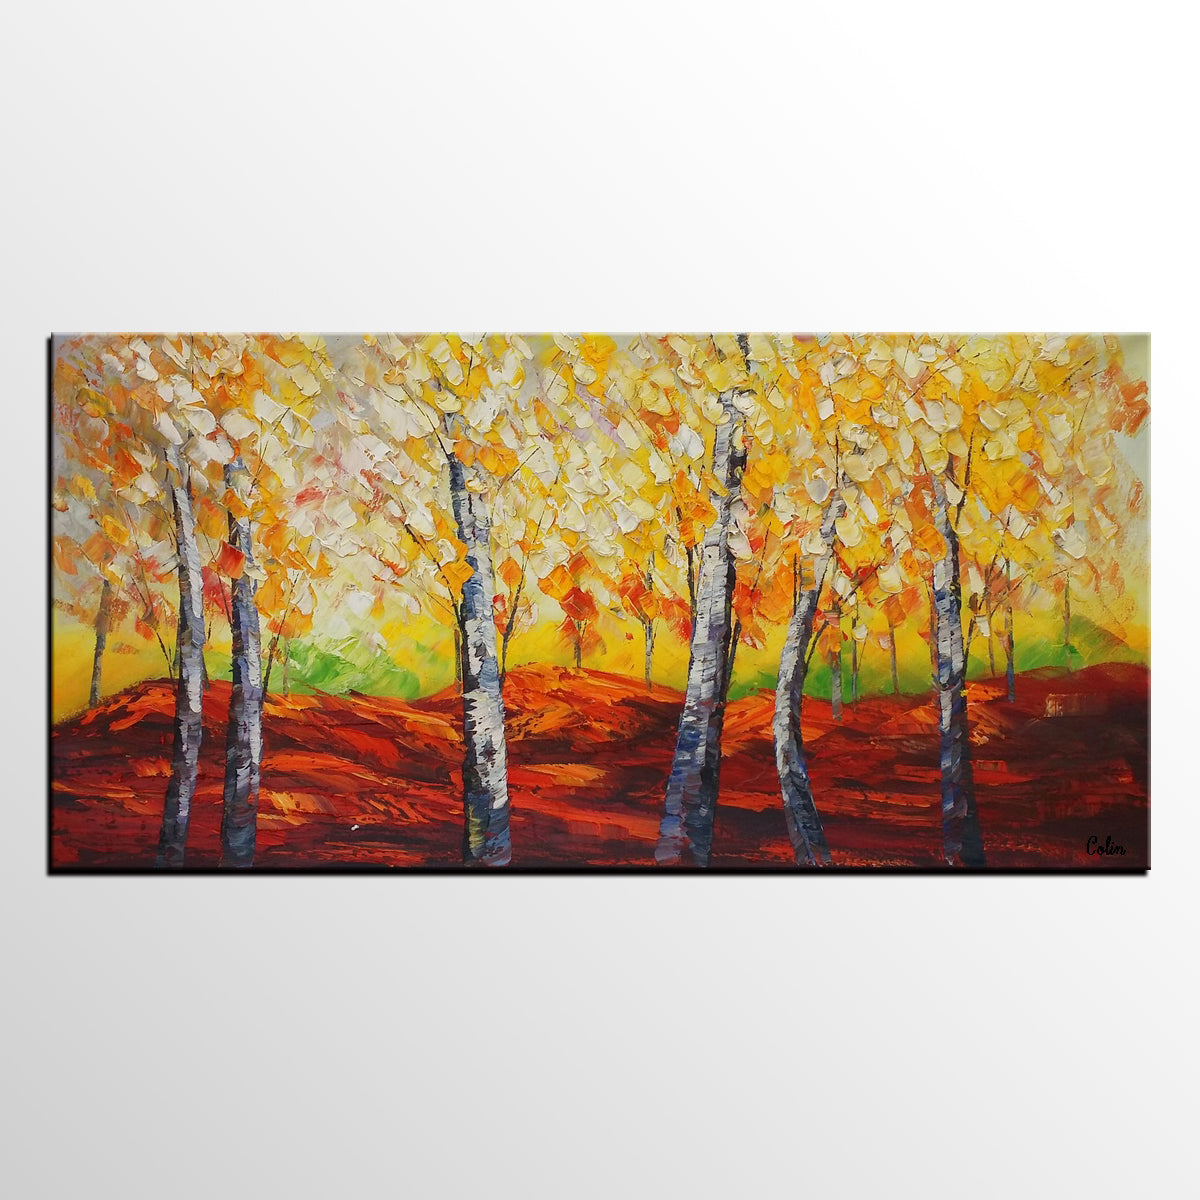 Heavy Texture Art, Autumn Tree Painting, Large Wall Art, Canvas Wall Art, Abstract Art, Large Abstract Painting, Original Painting